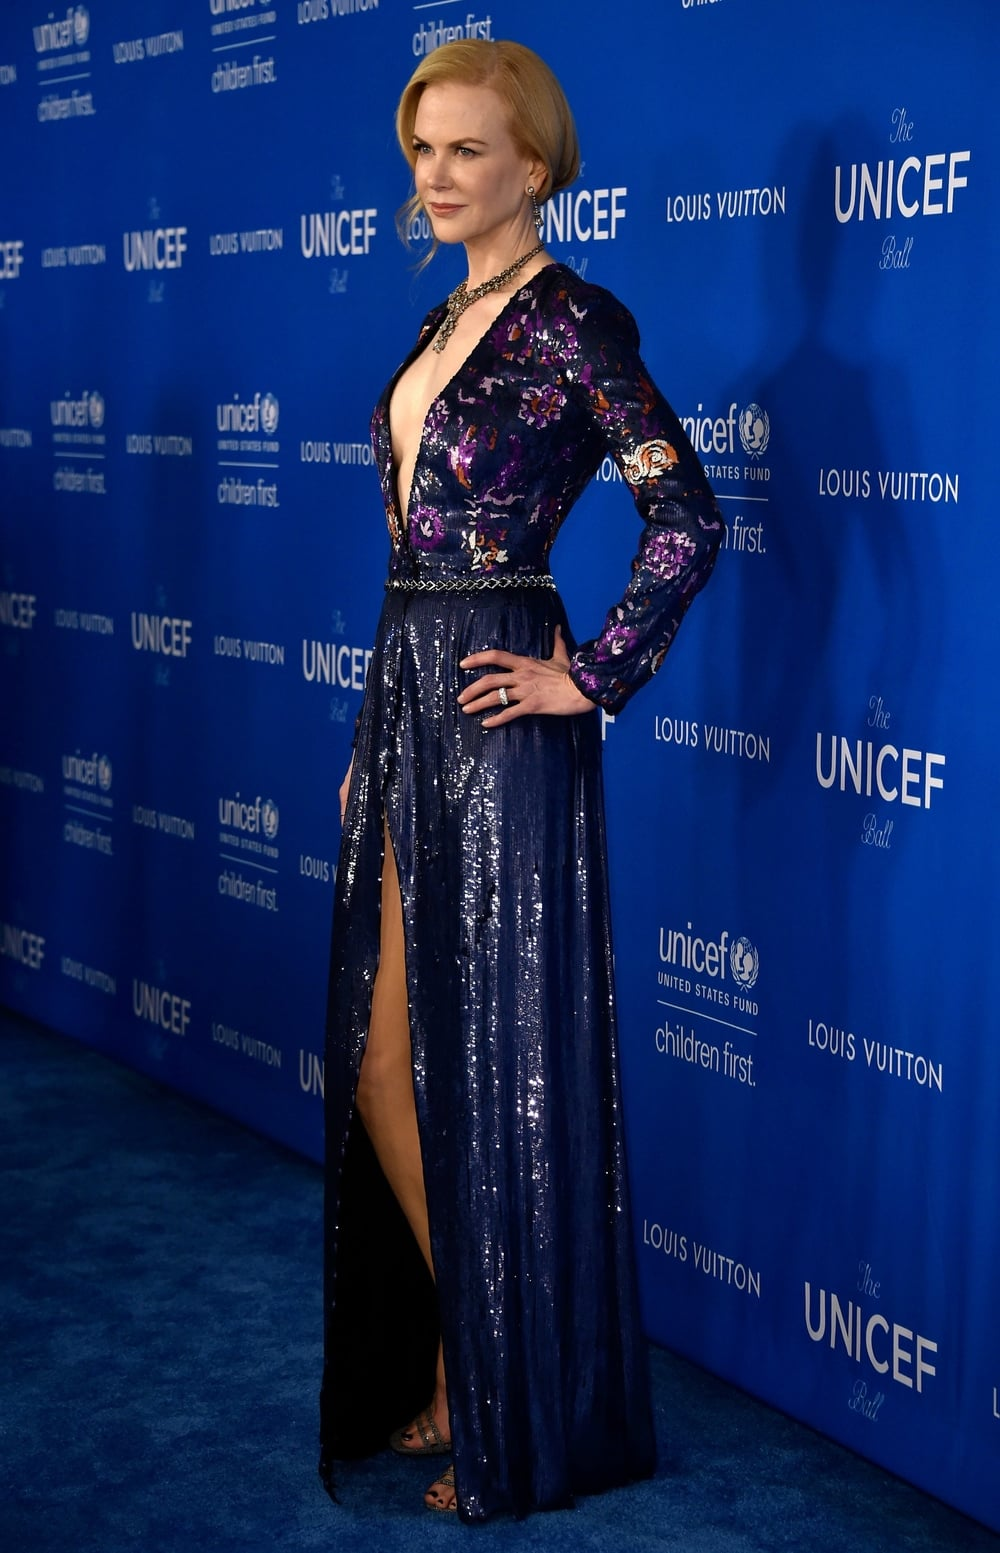 12 February  Nicole Kidman walked the red carpet at the Unicef Ball in Los Angeles wearing a sparkling deep blue sequin gown